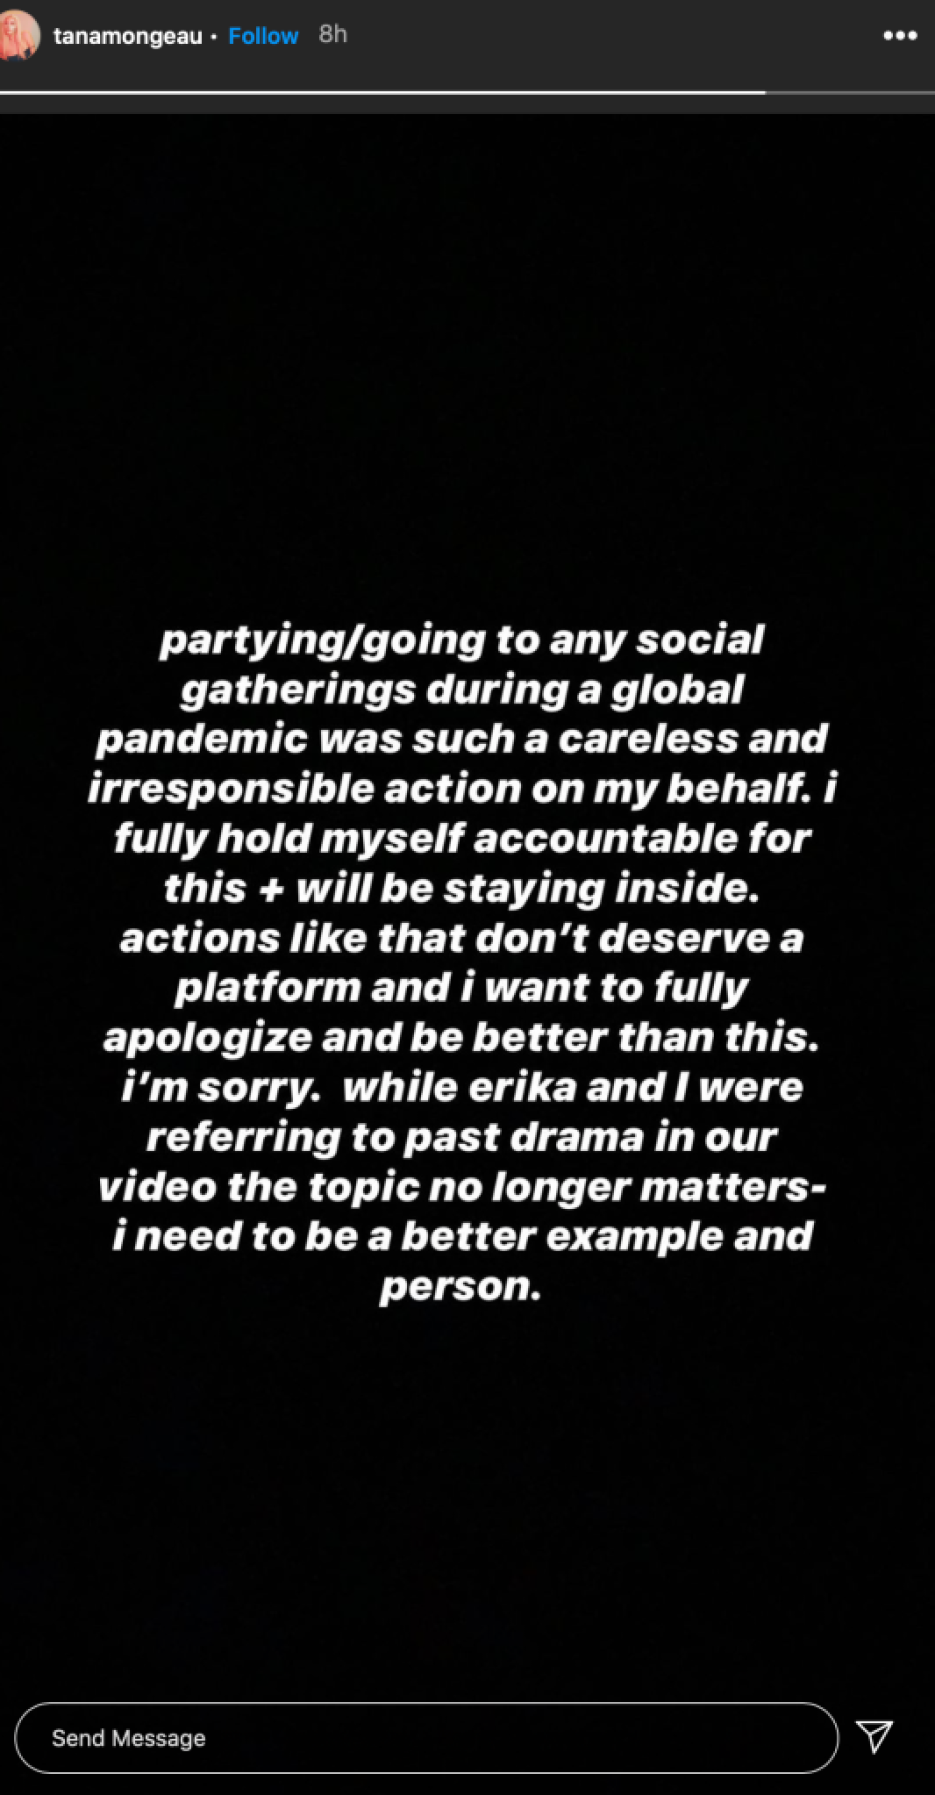 Tana Mongeau Apologizes After Coming Under Fire For Saying She 'Doesn't Care' While Partying During Coronavirus Pandemic